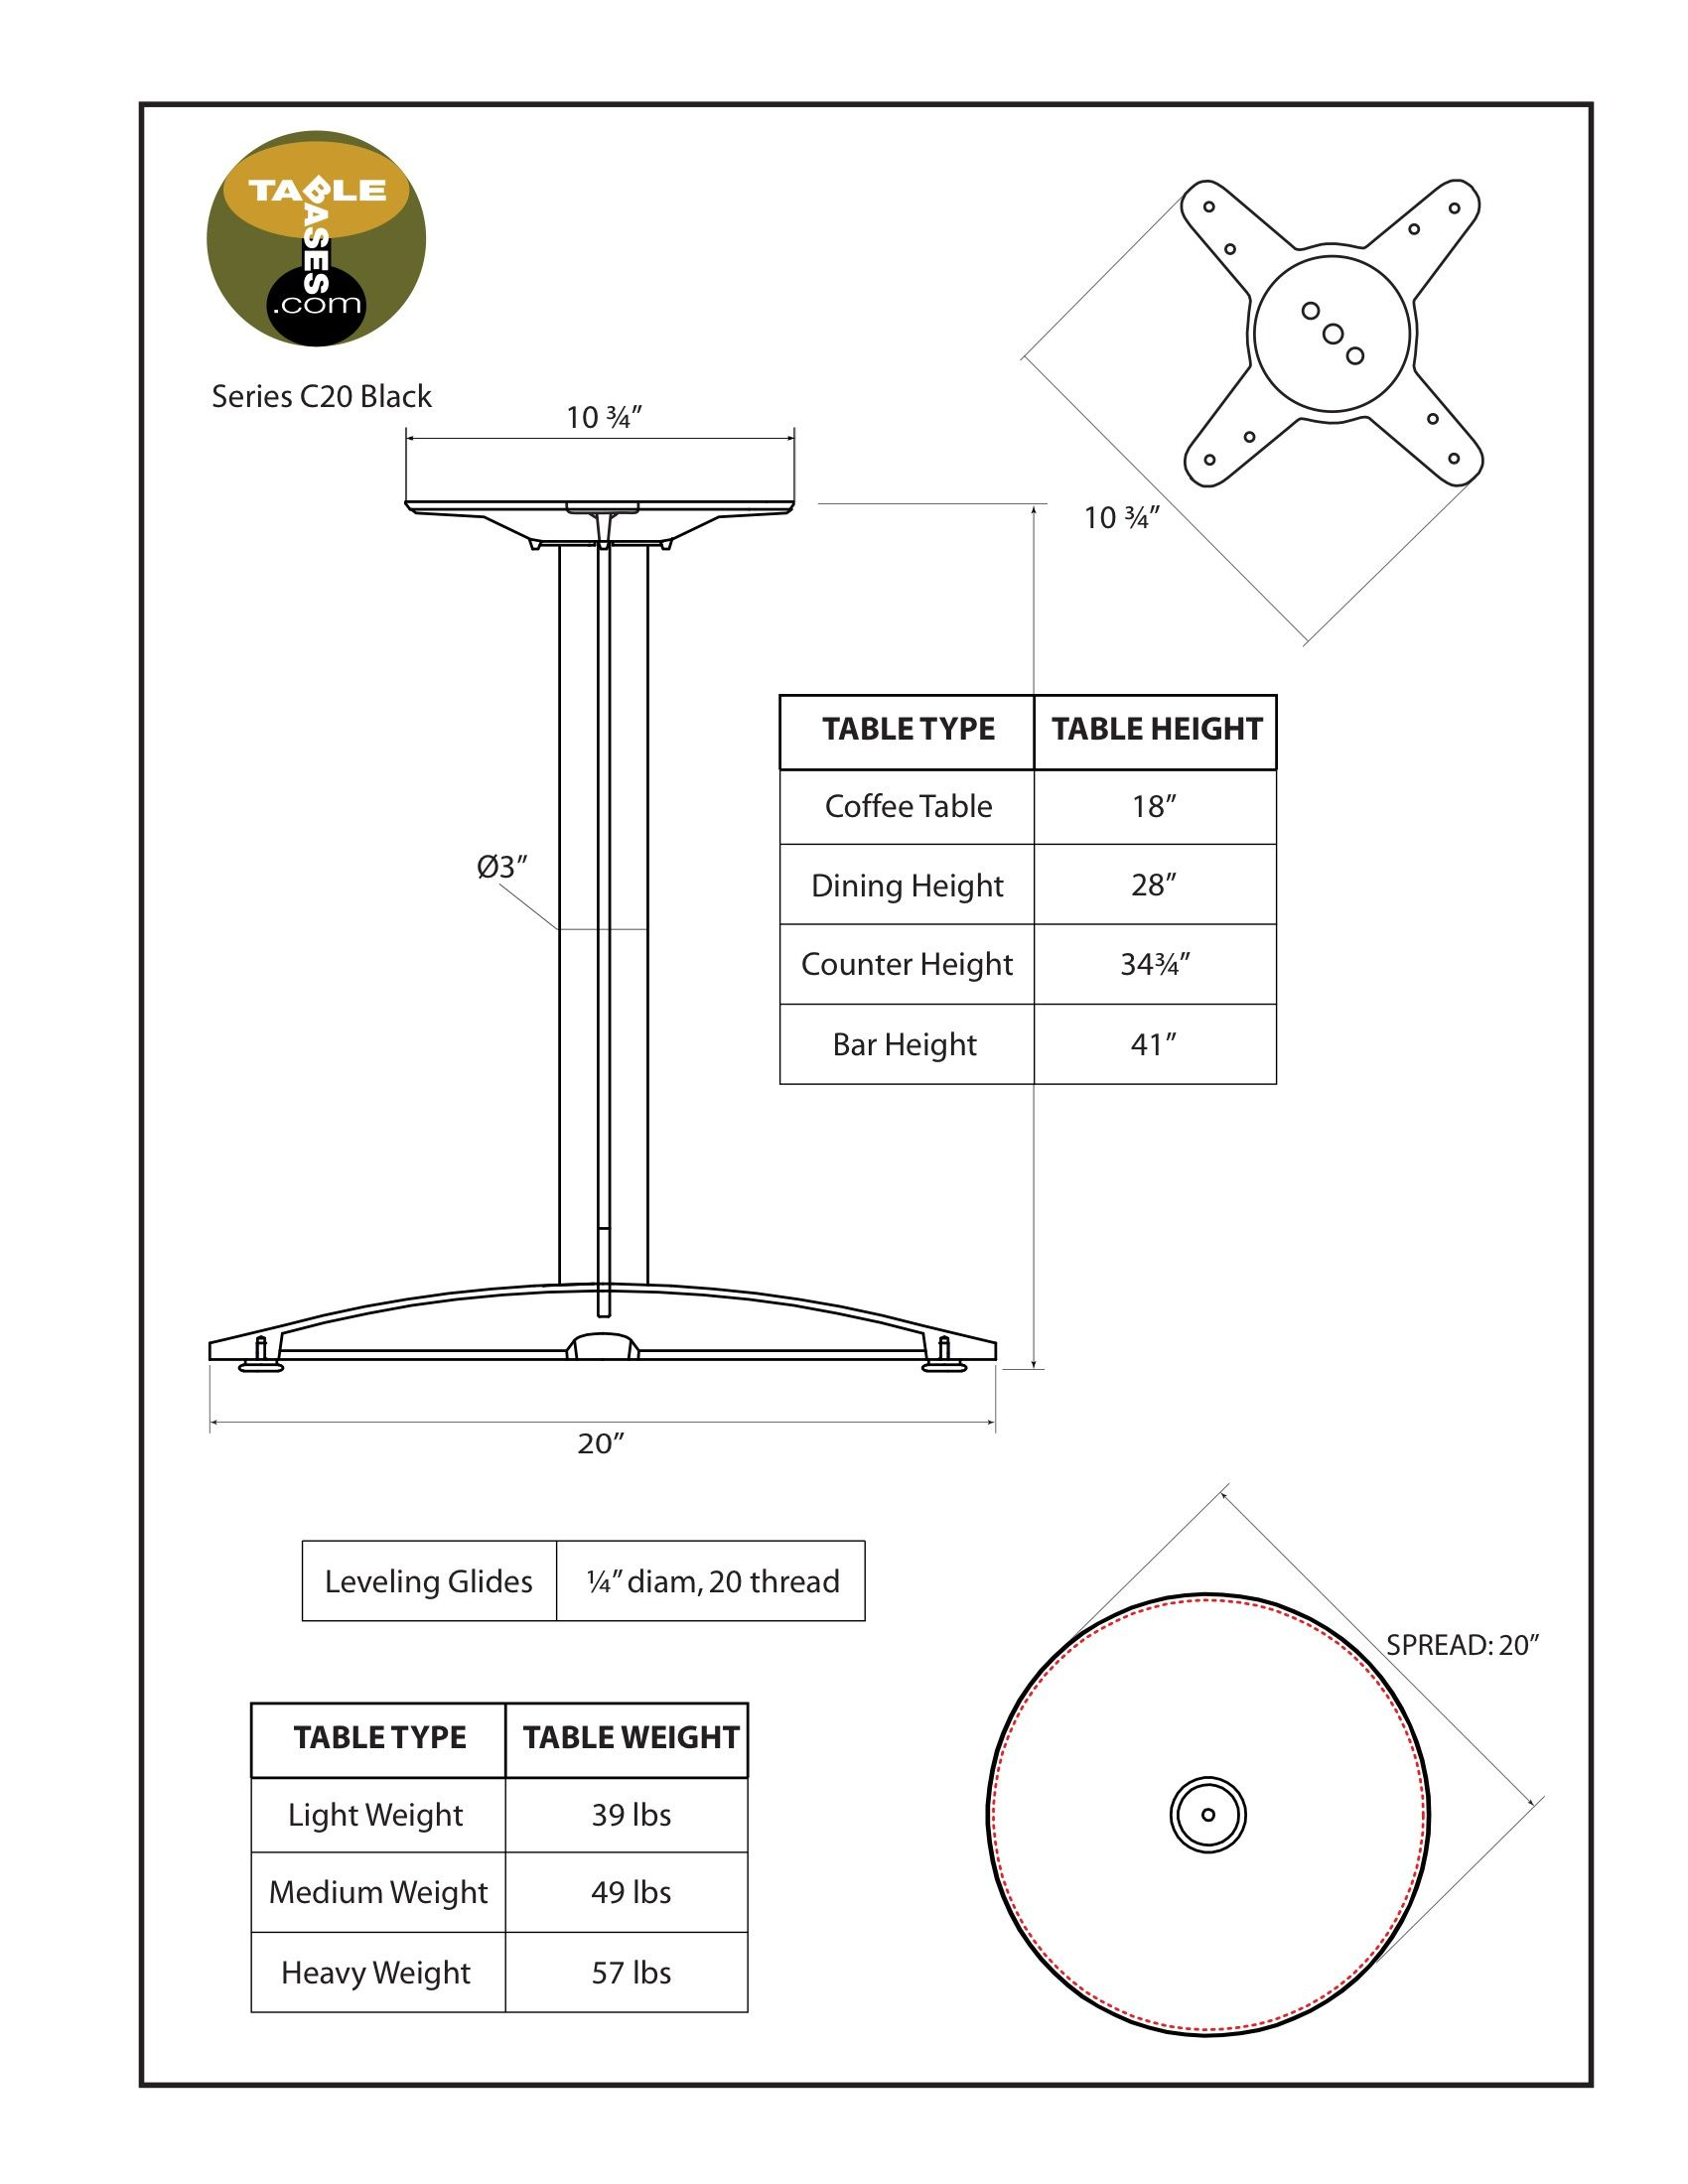 C20 Black Table Base - Specifications